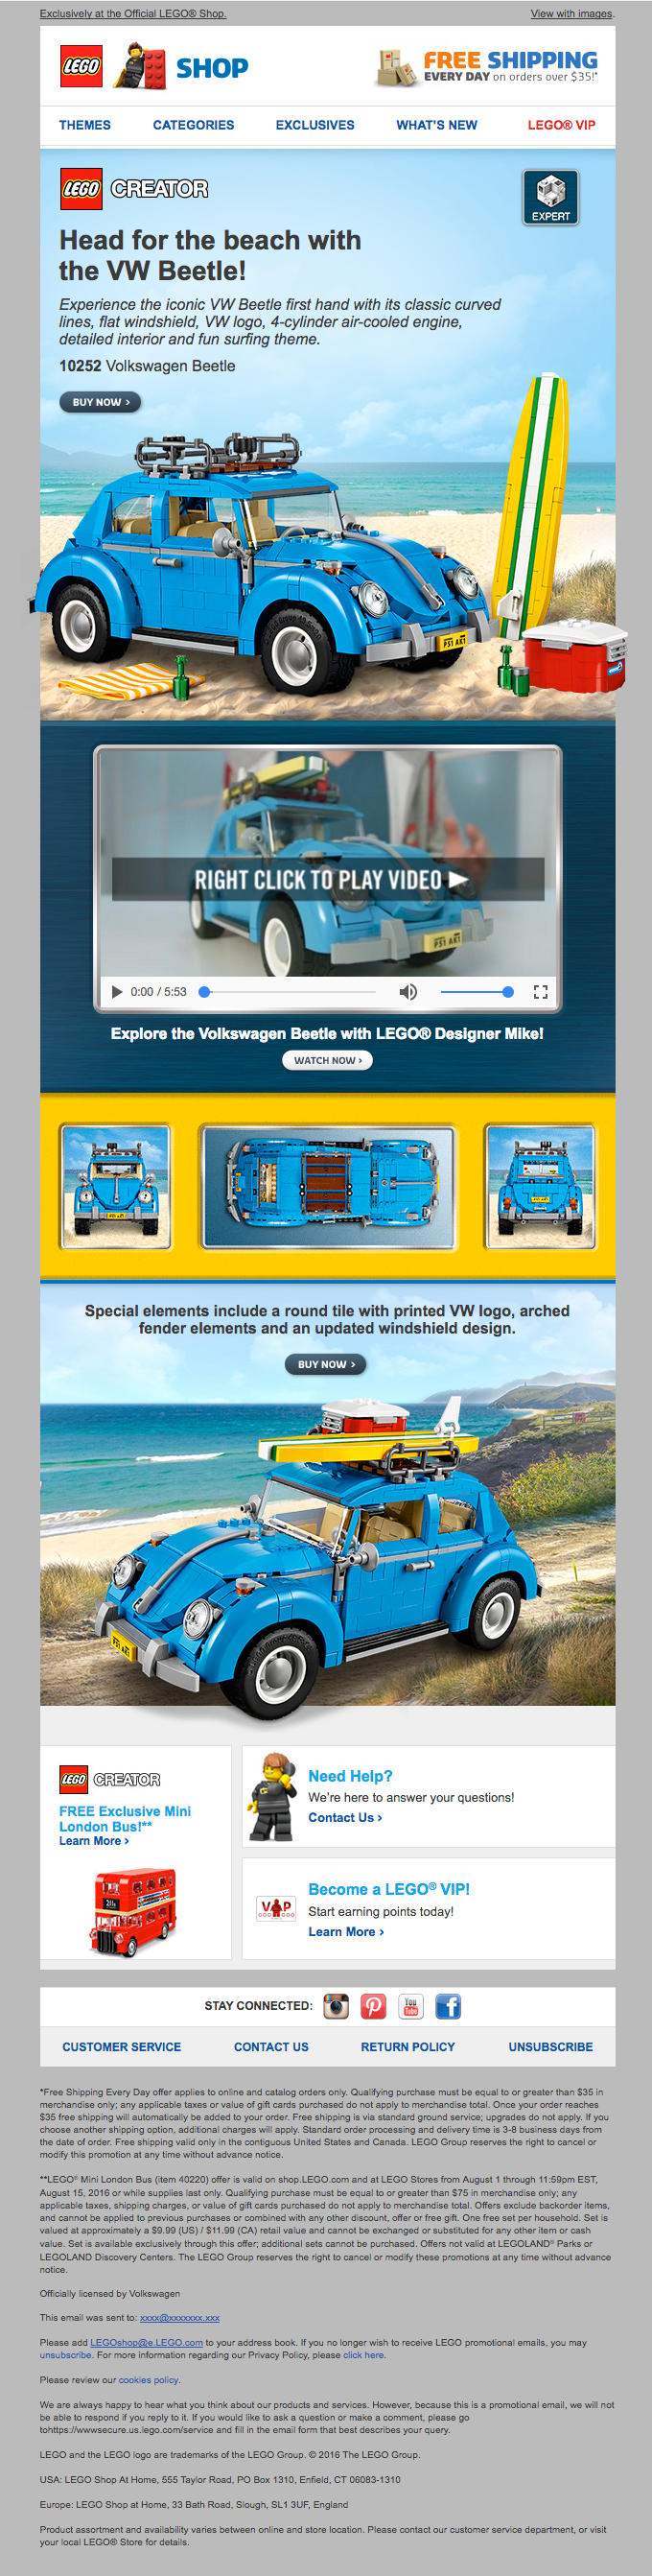 New Exclusive LEGO® Creator Volkswagen Beetle now available!